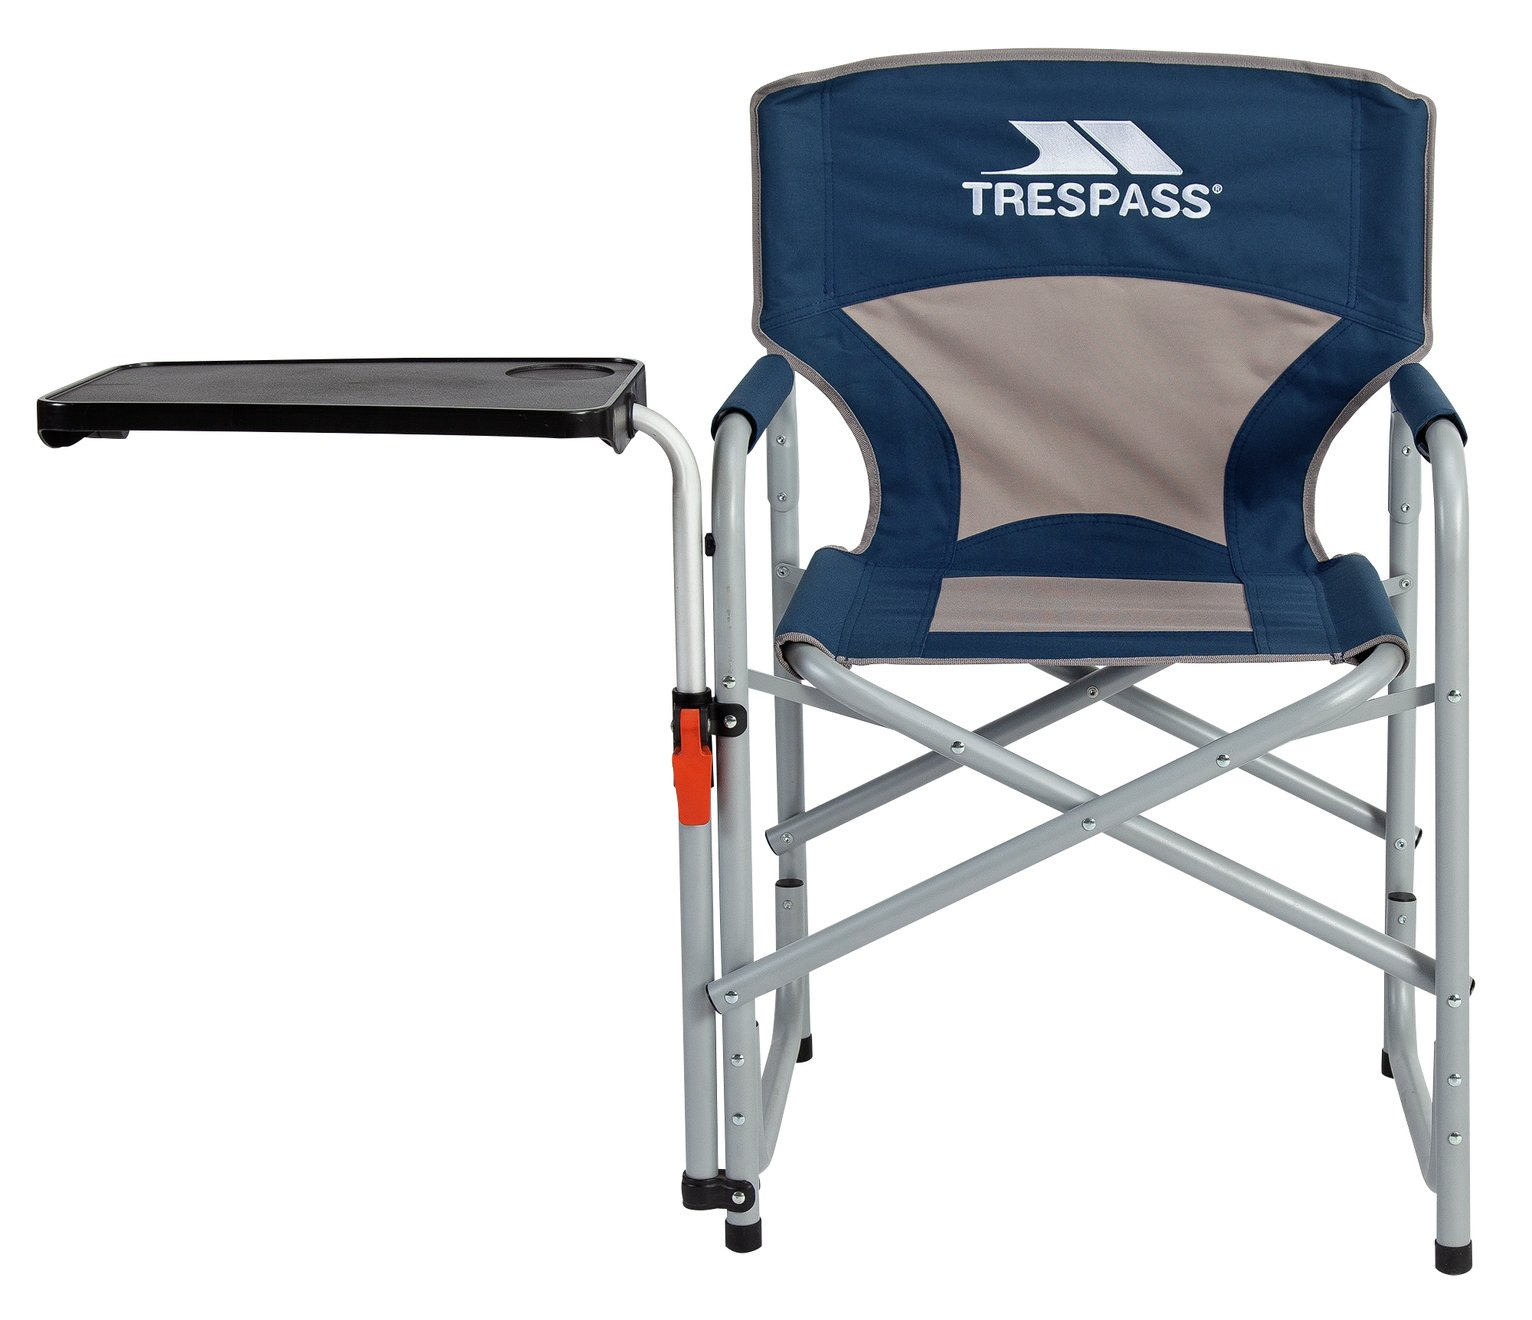 fishing chair argos bumbo chairs for babies results trespass with swivel side table